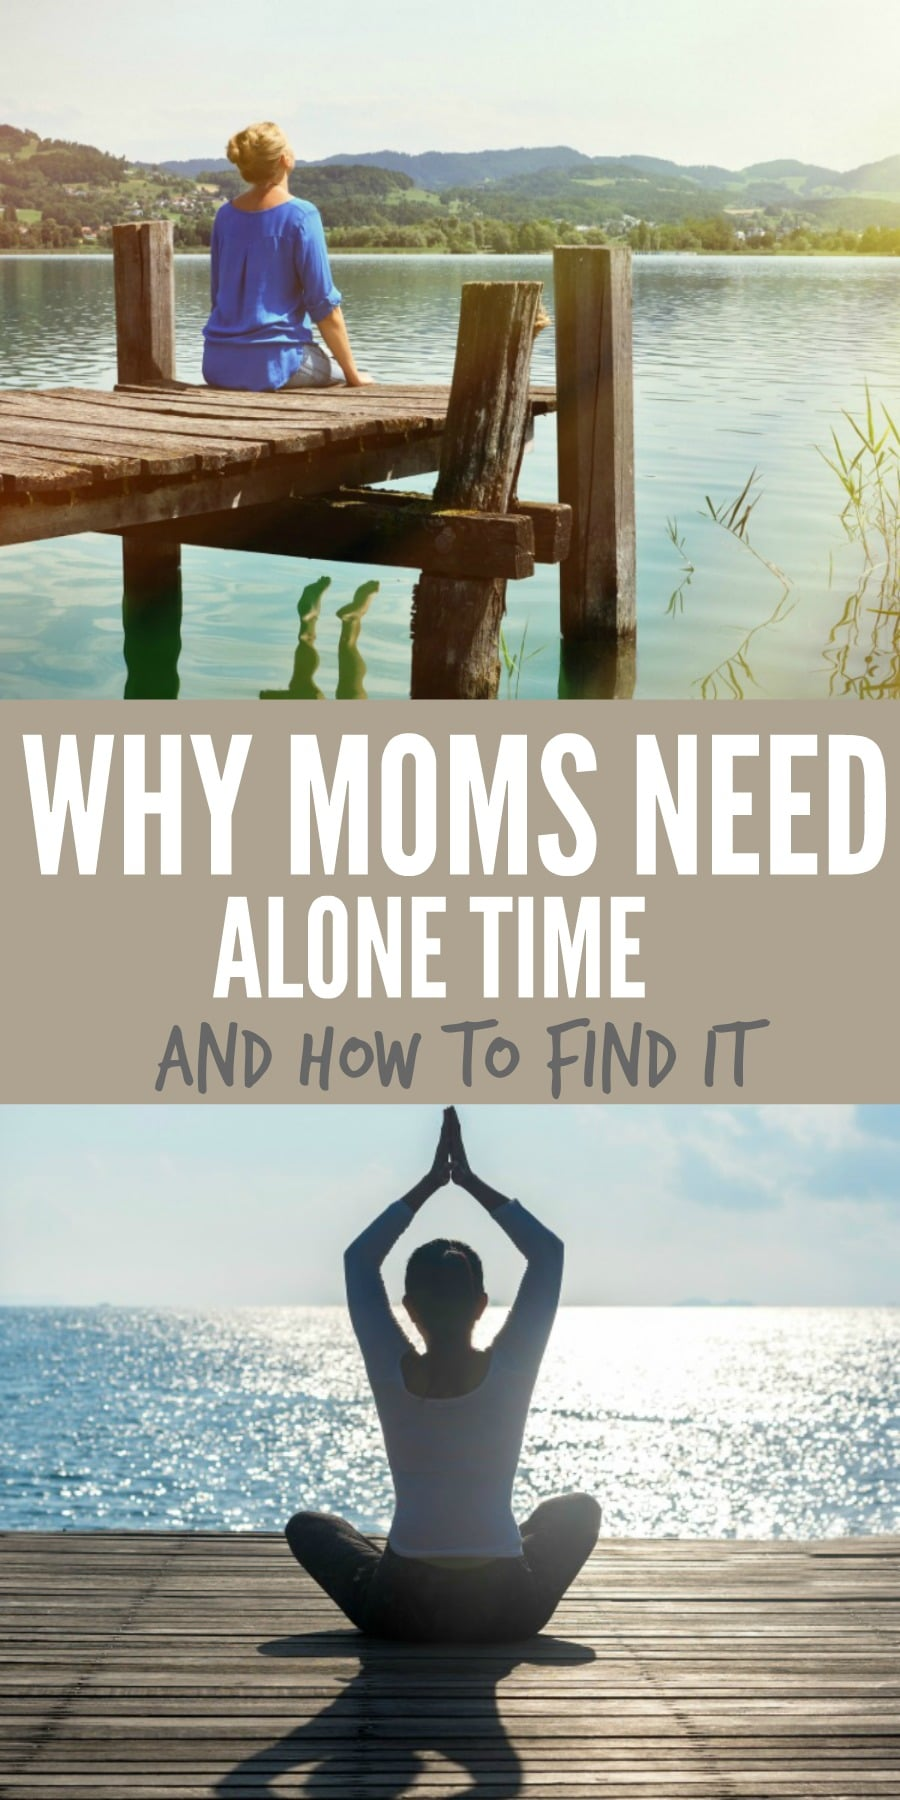 moms need alone time